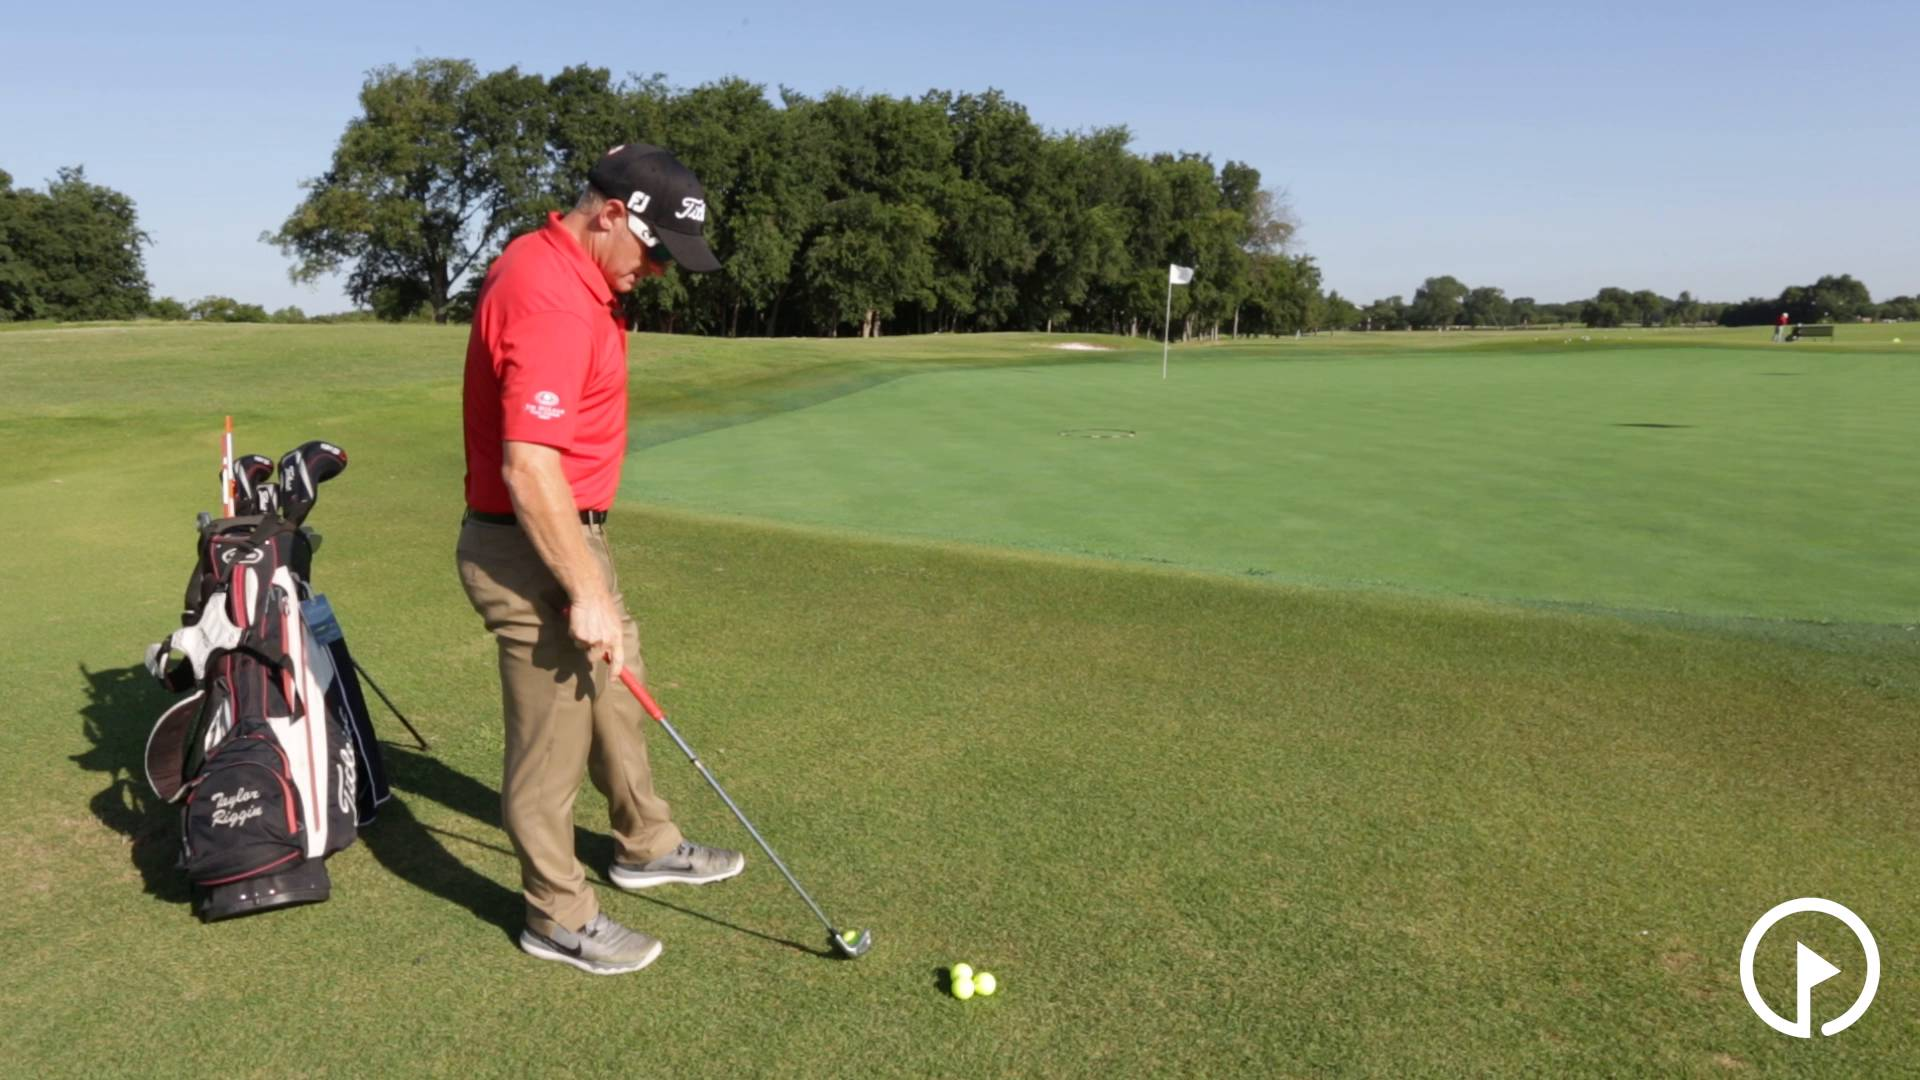 On Course Strategy: When to Use a Pitching Wedge